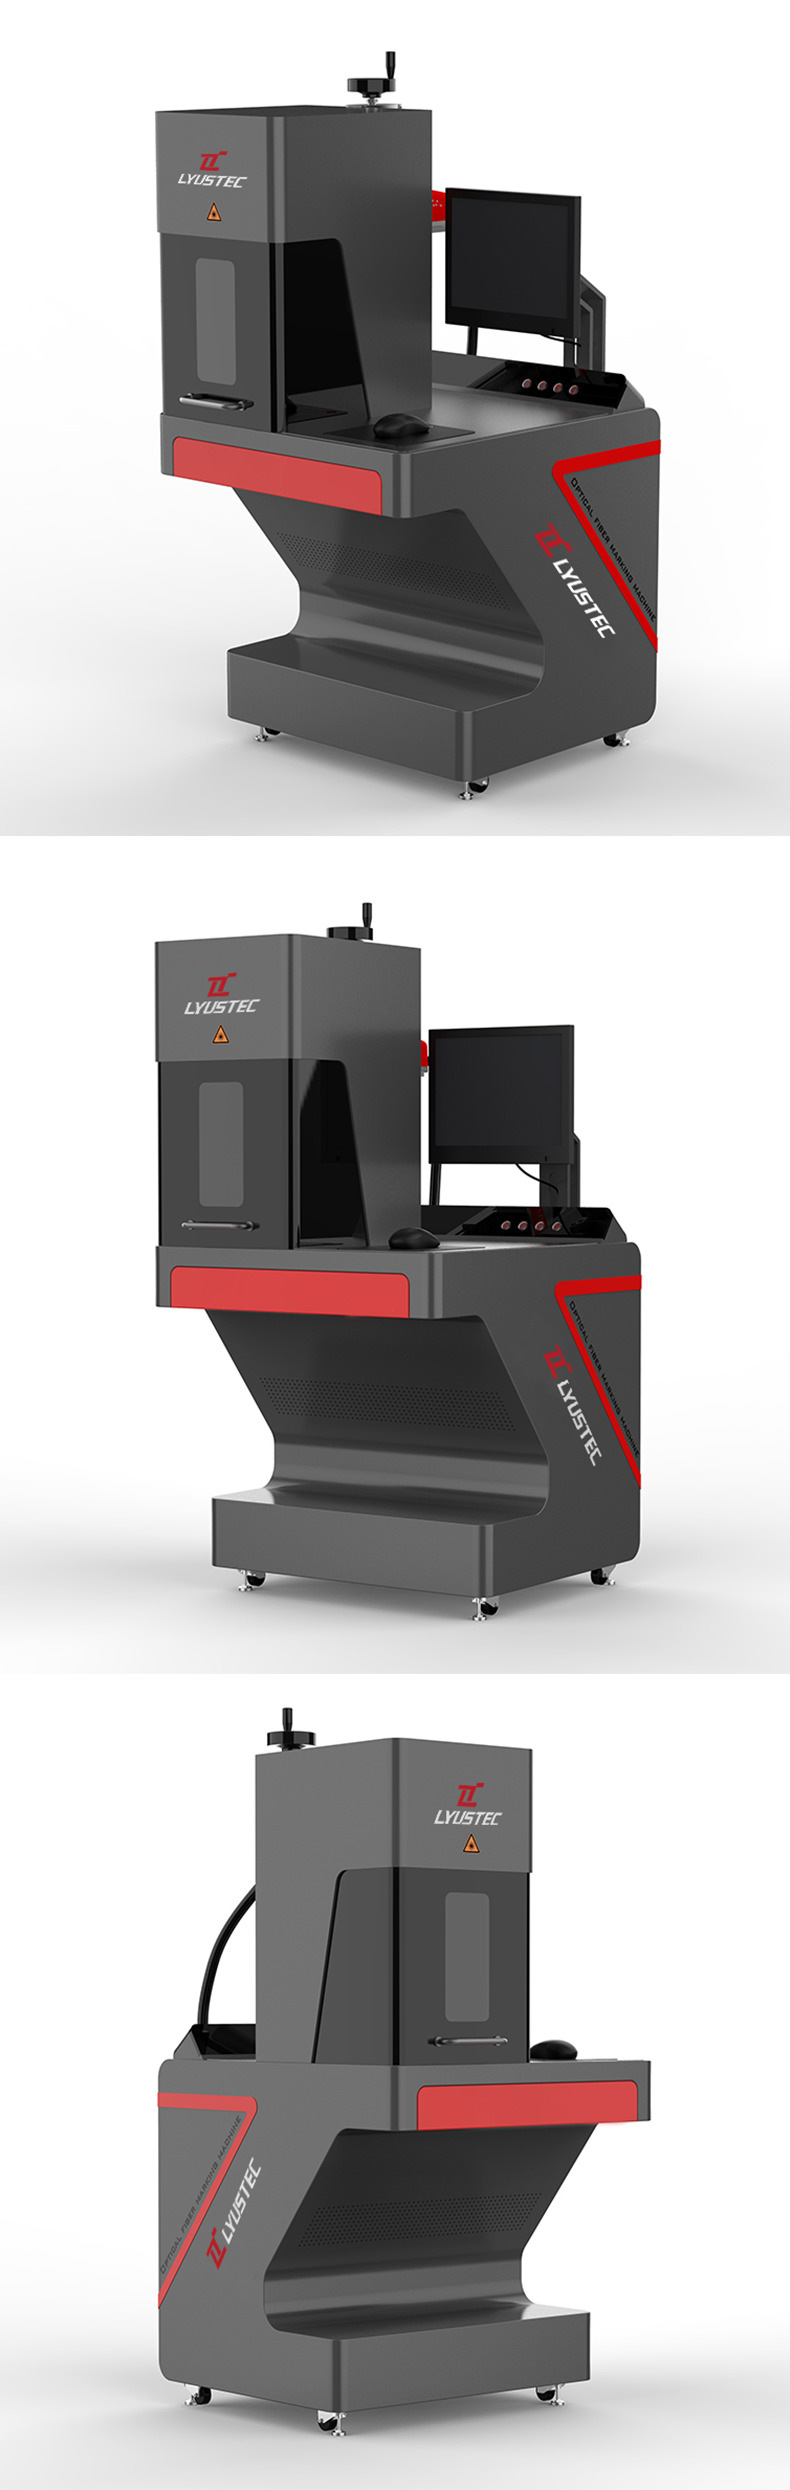 Fiber Metal Laser Marking Machine Manufacturer